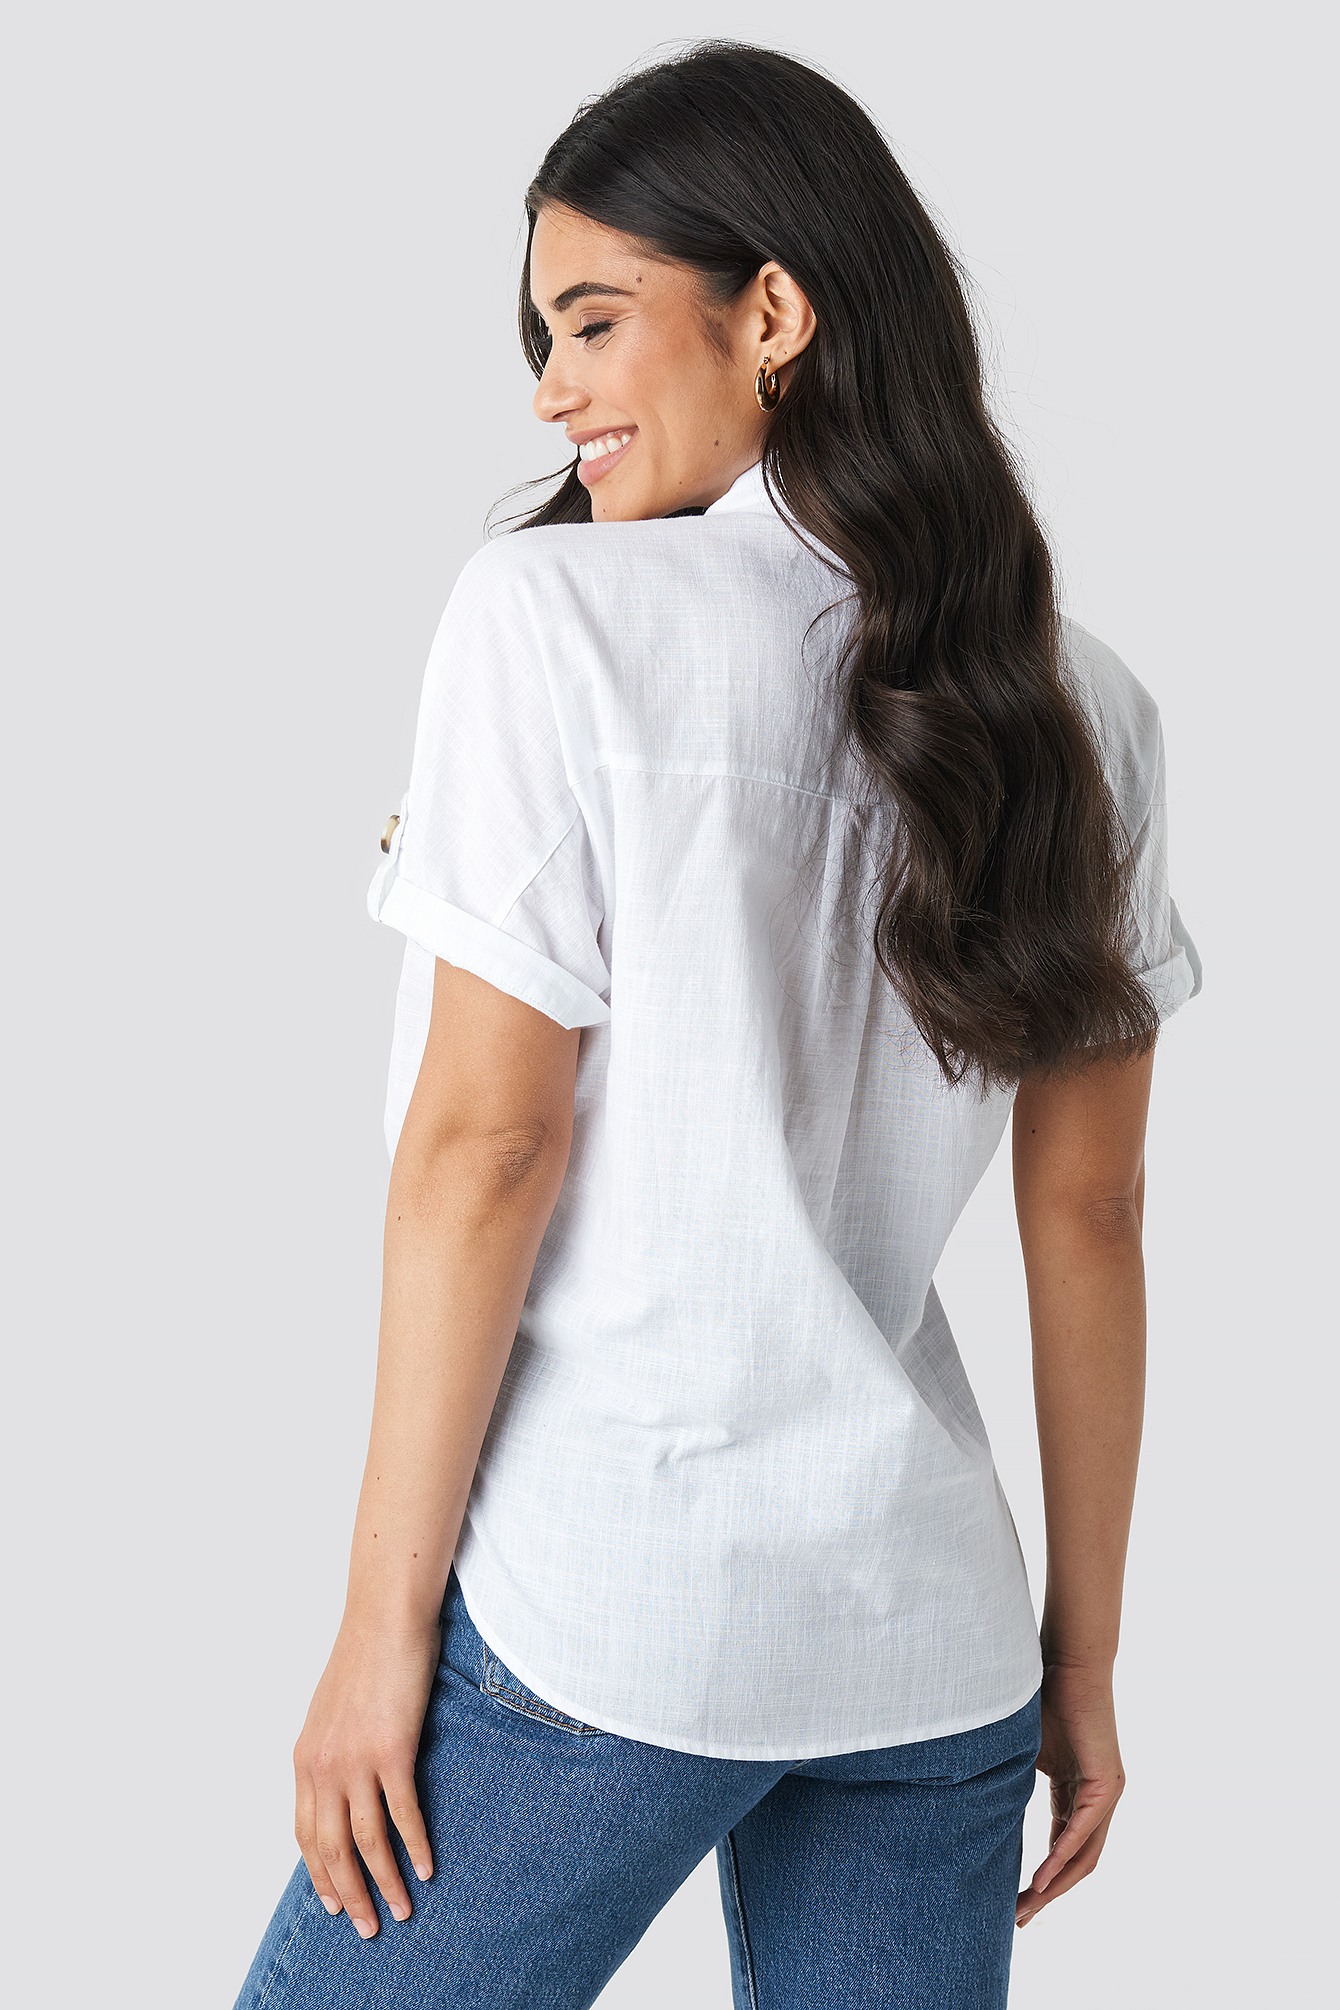 White Etap Shirt